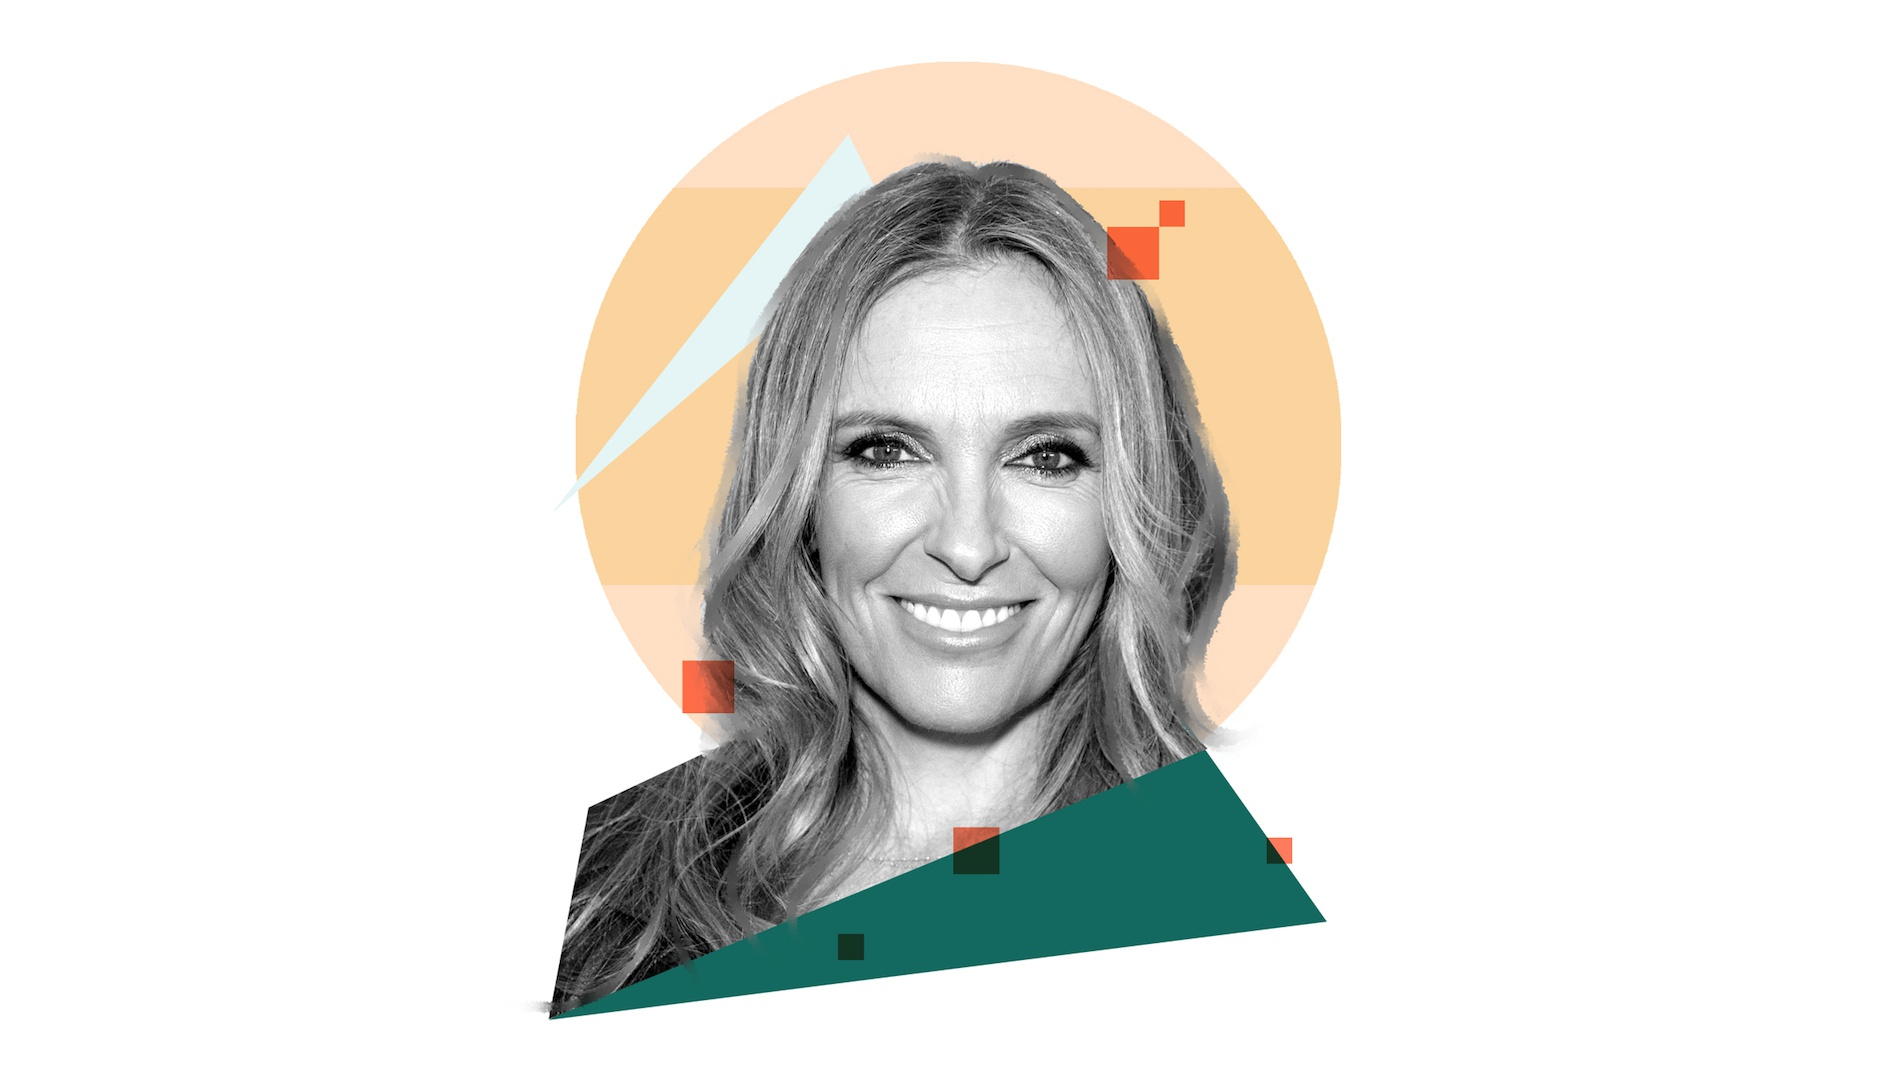 Toni Collette Can Finally Laugh Off Her Bombed Audition for Spike Jonze's 'Adaptation'